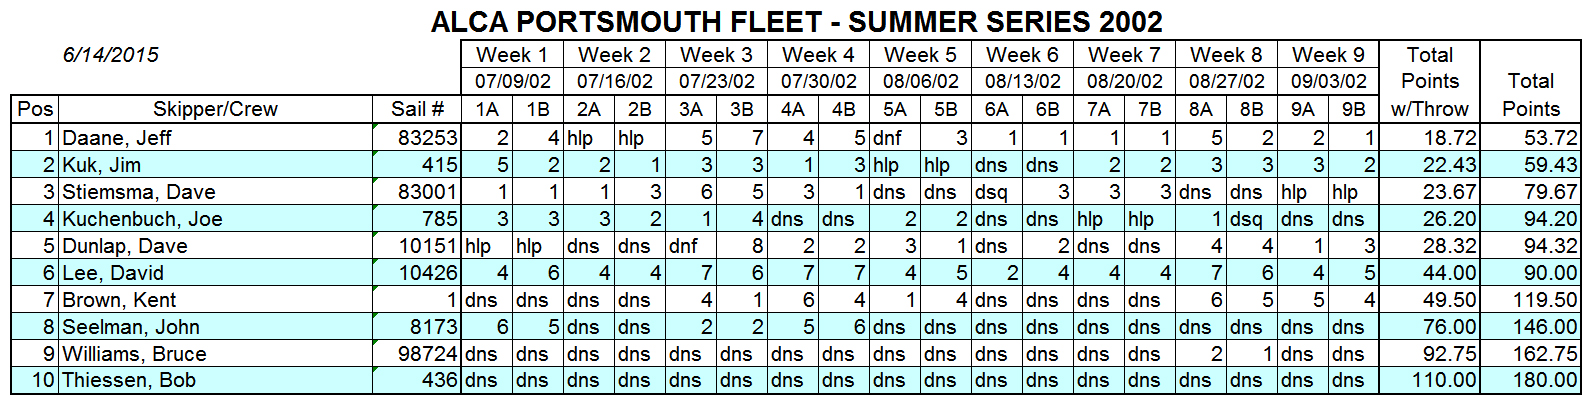 2002 Summer Portsmouth Fleet Results